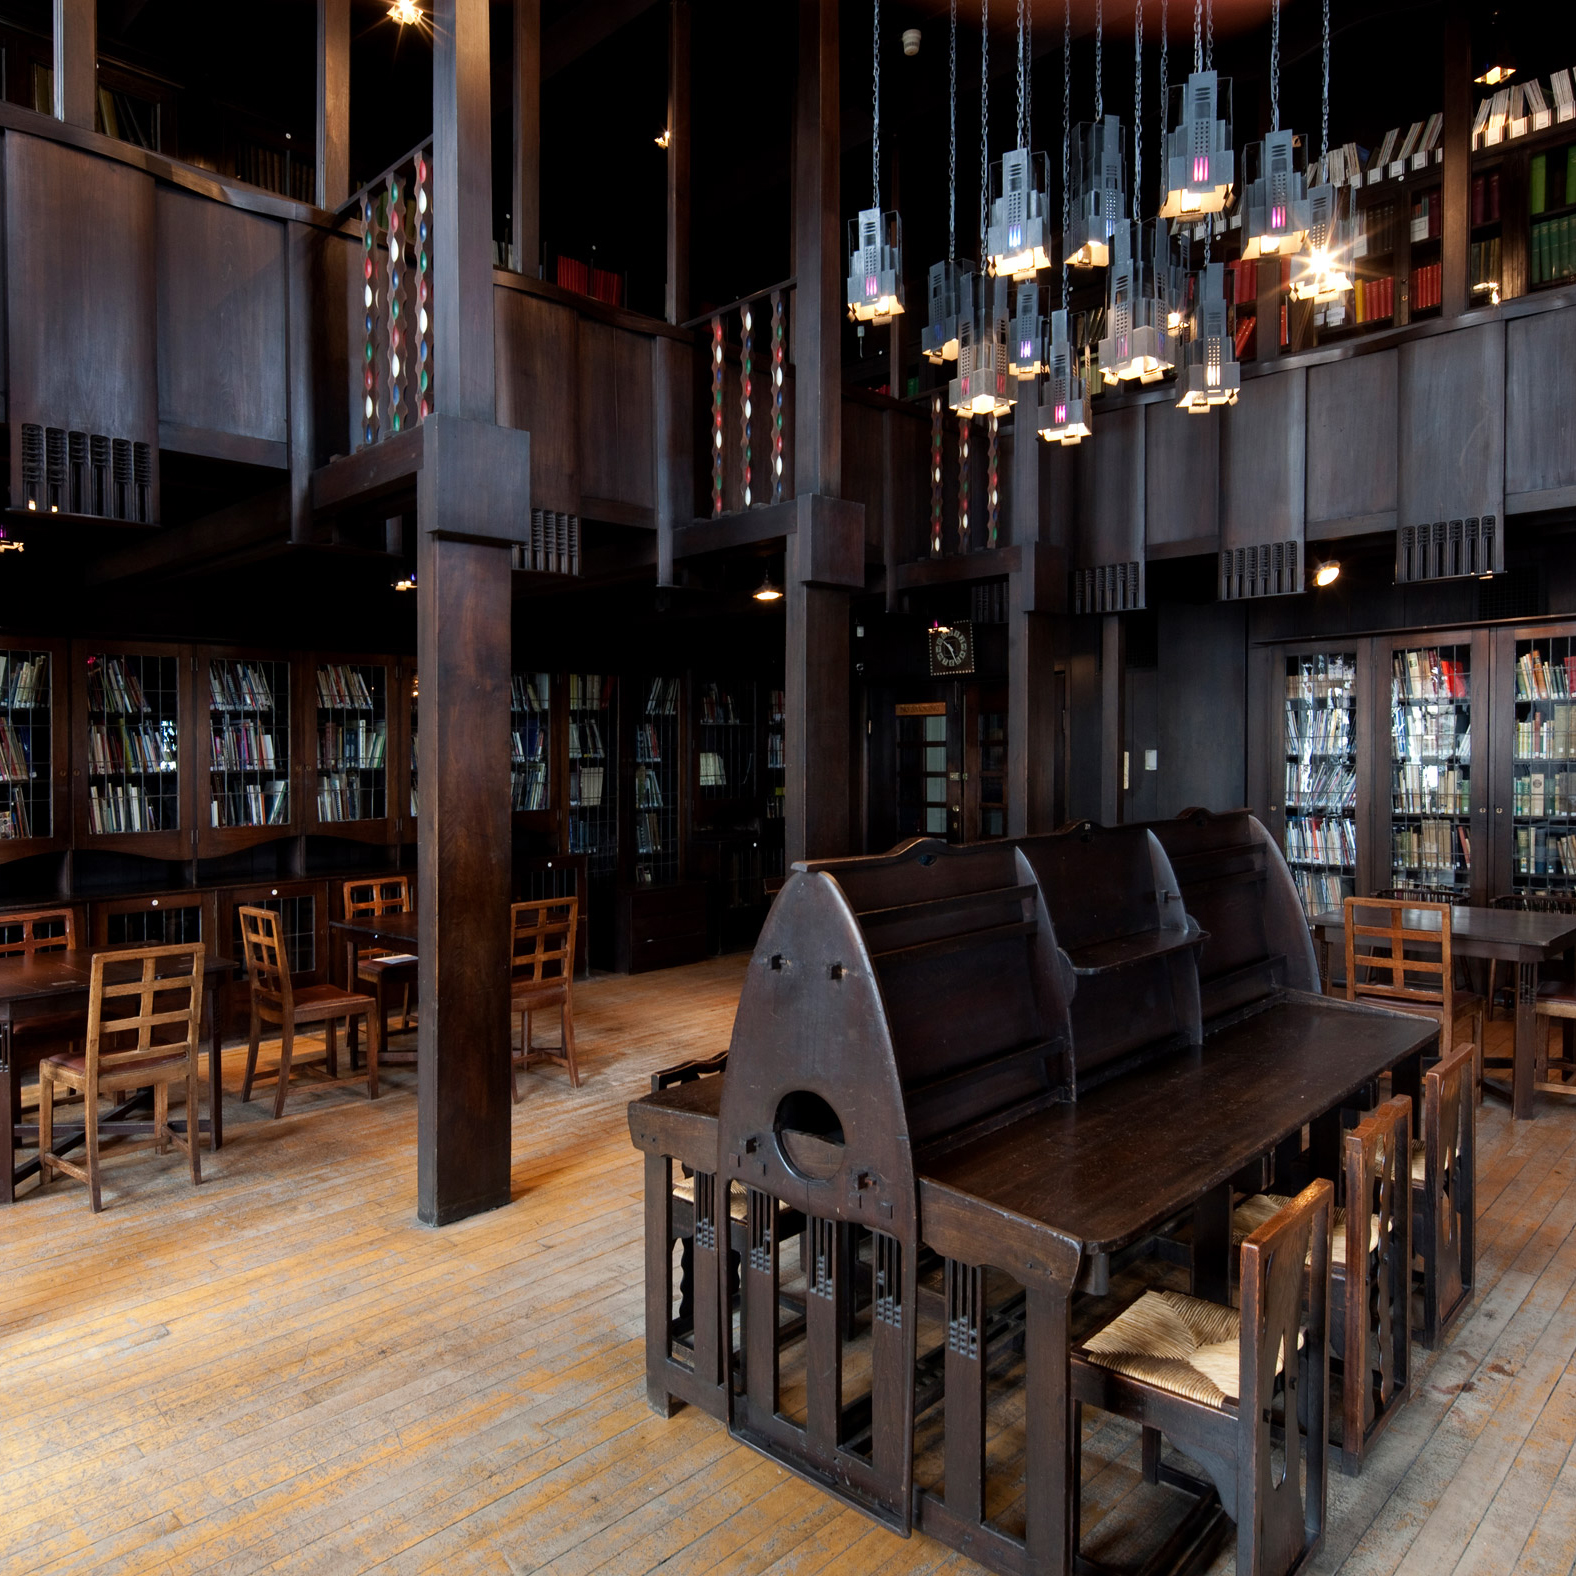 Glasgow School Of Art Is Charles Rennie Mackintosh S Masterwork